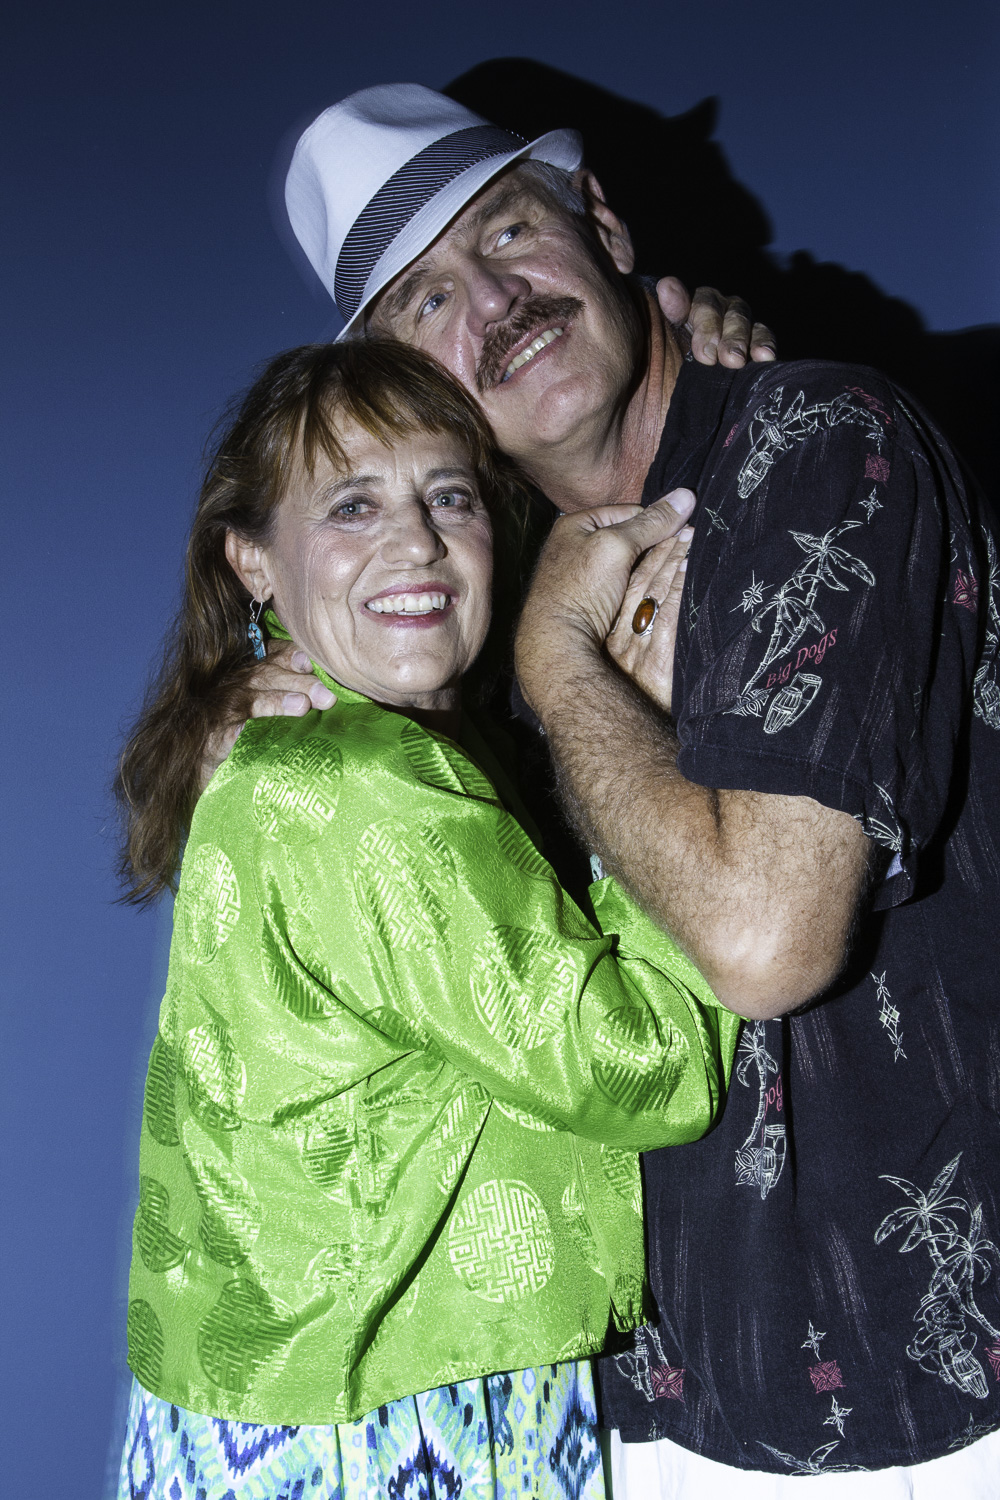 Matilde's Parents (Ruth Fahrbach and Lee Imboden) The two funniest people in Brazil